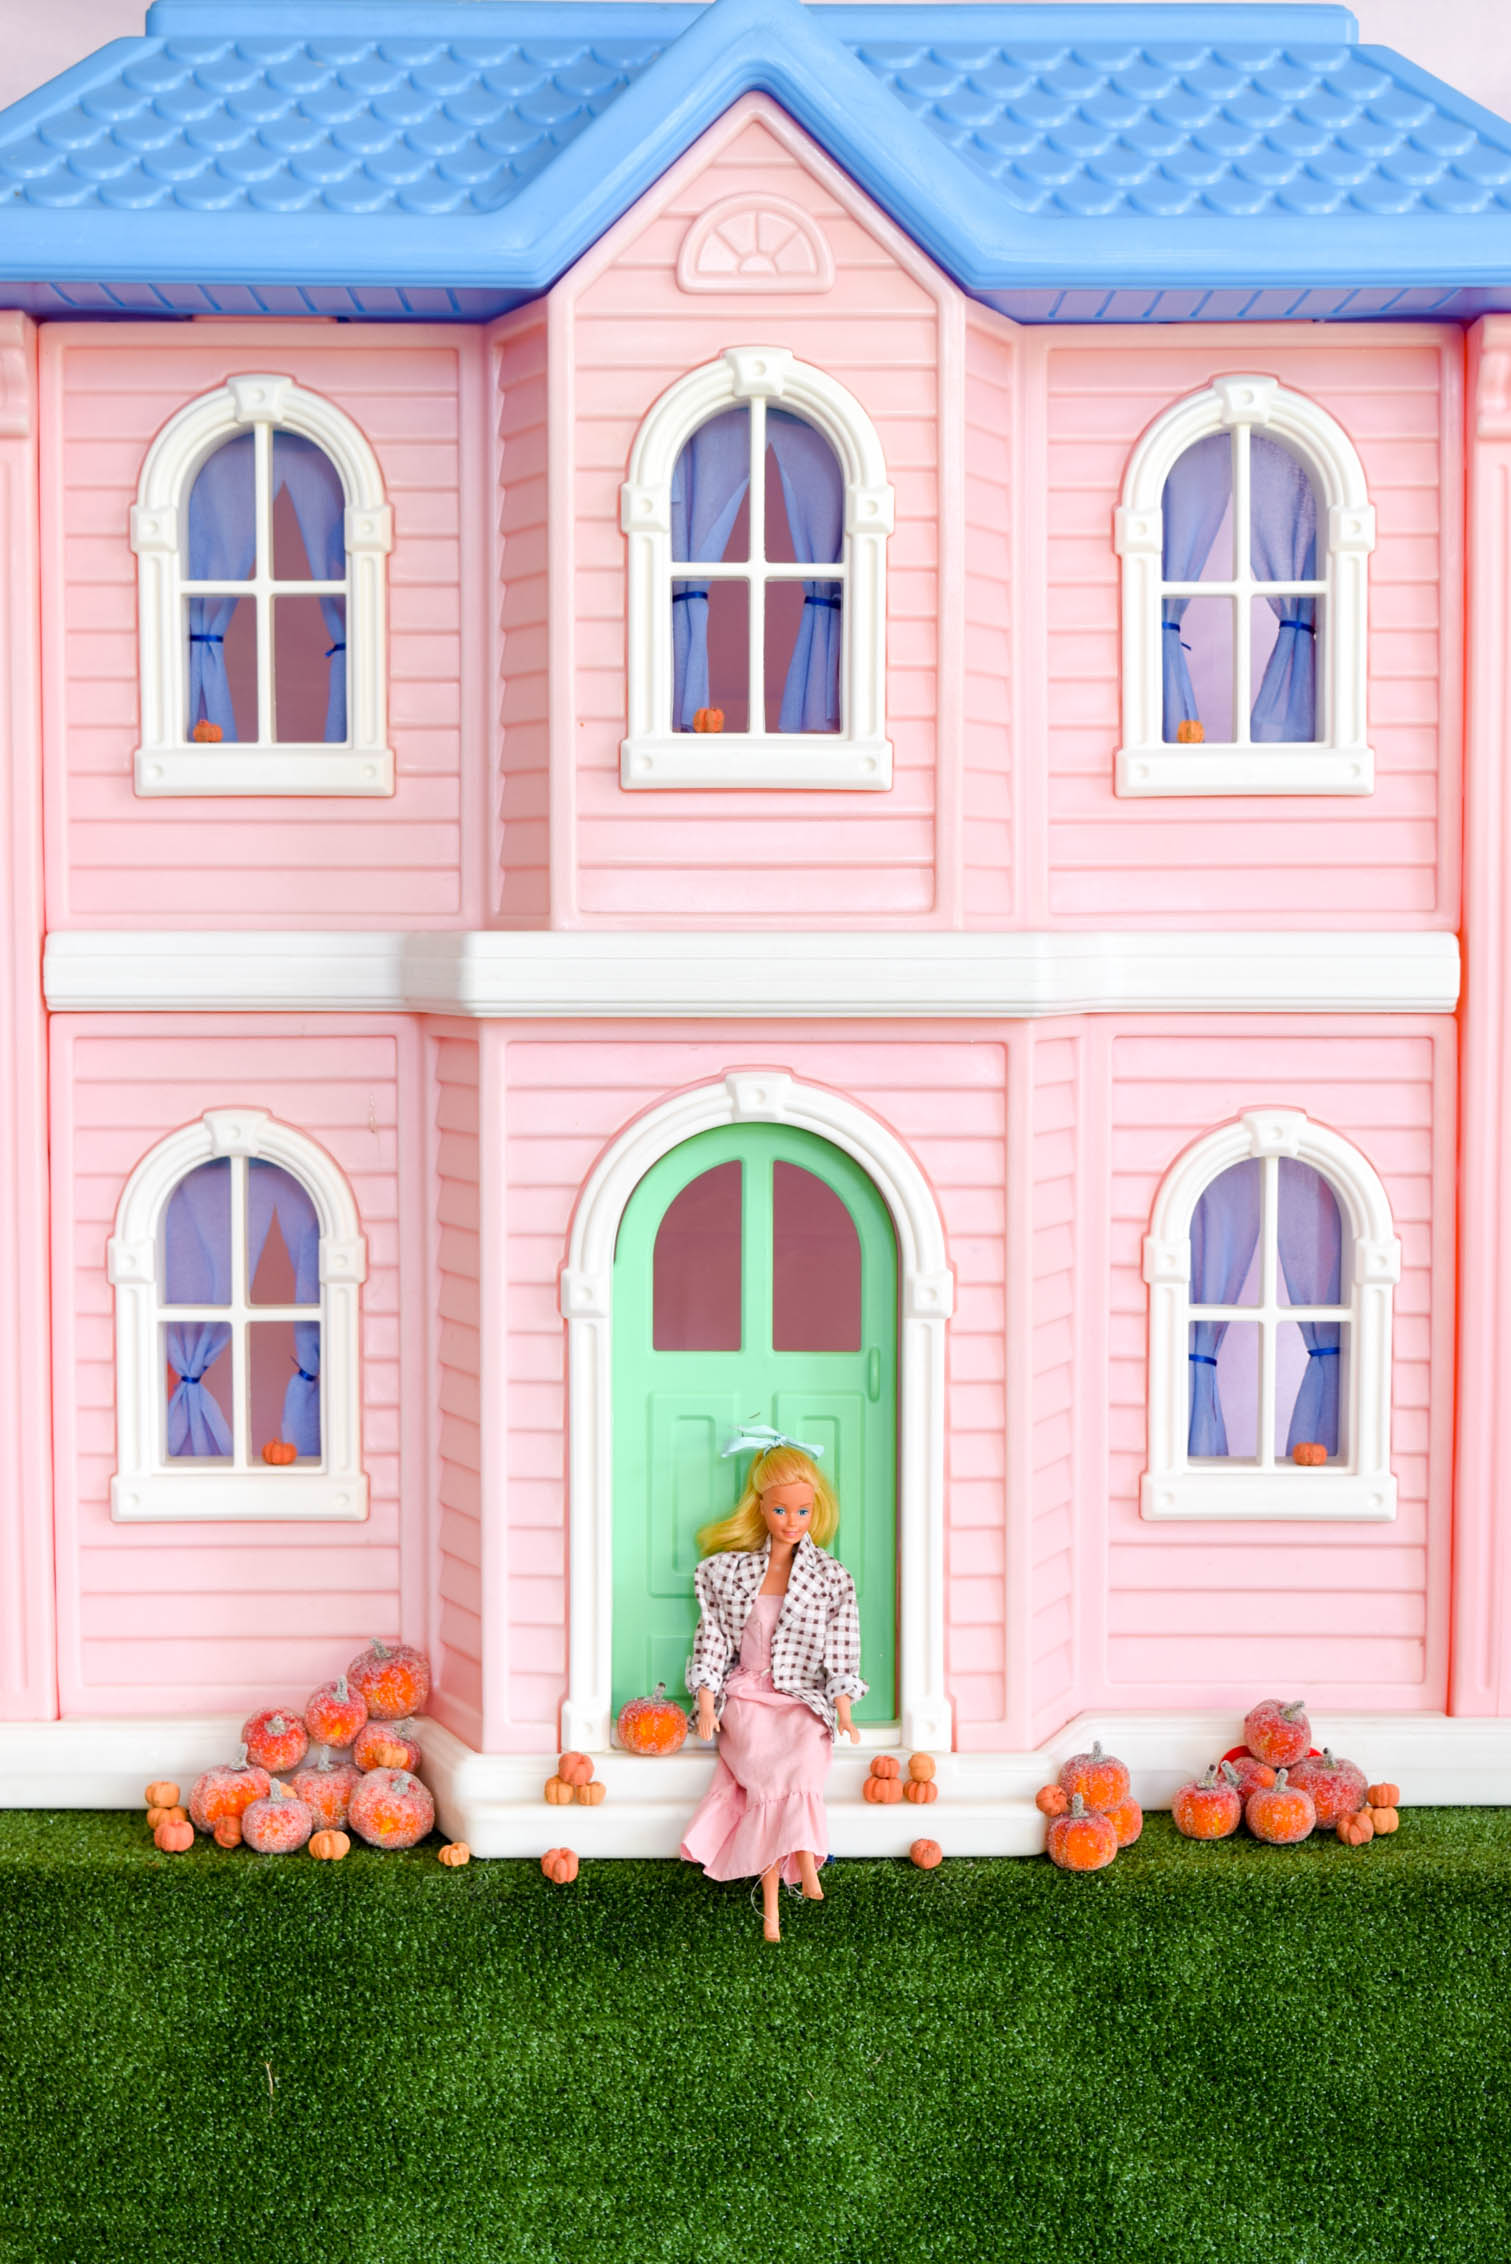 Fall Barbie Dream House Wallpaper Downloads Pmq For Two